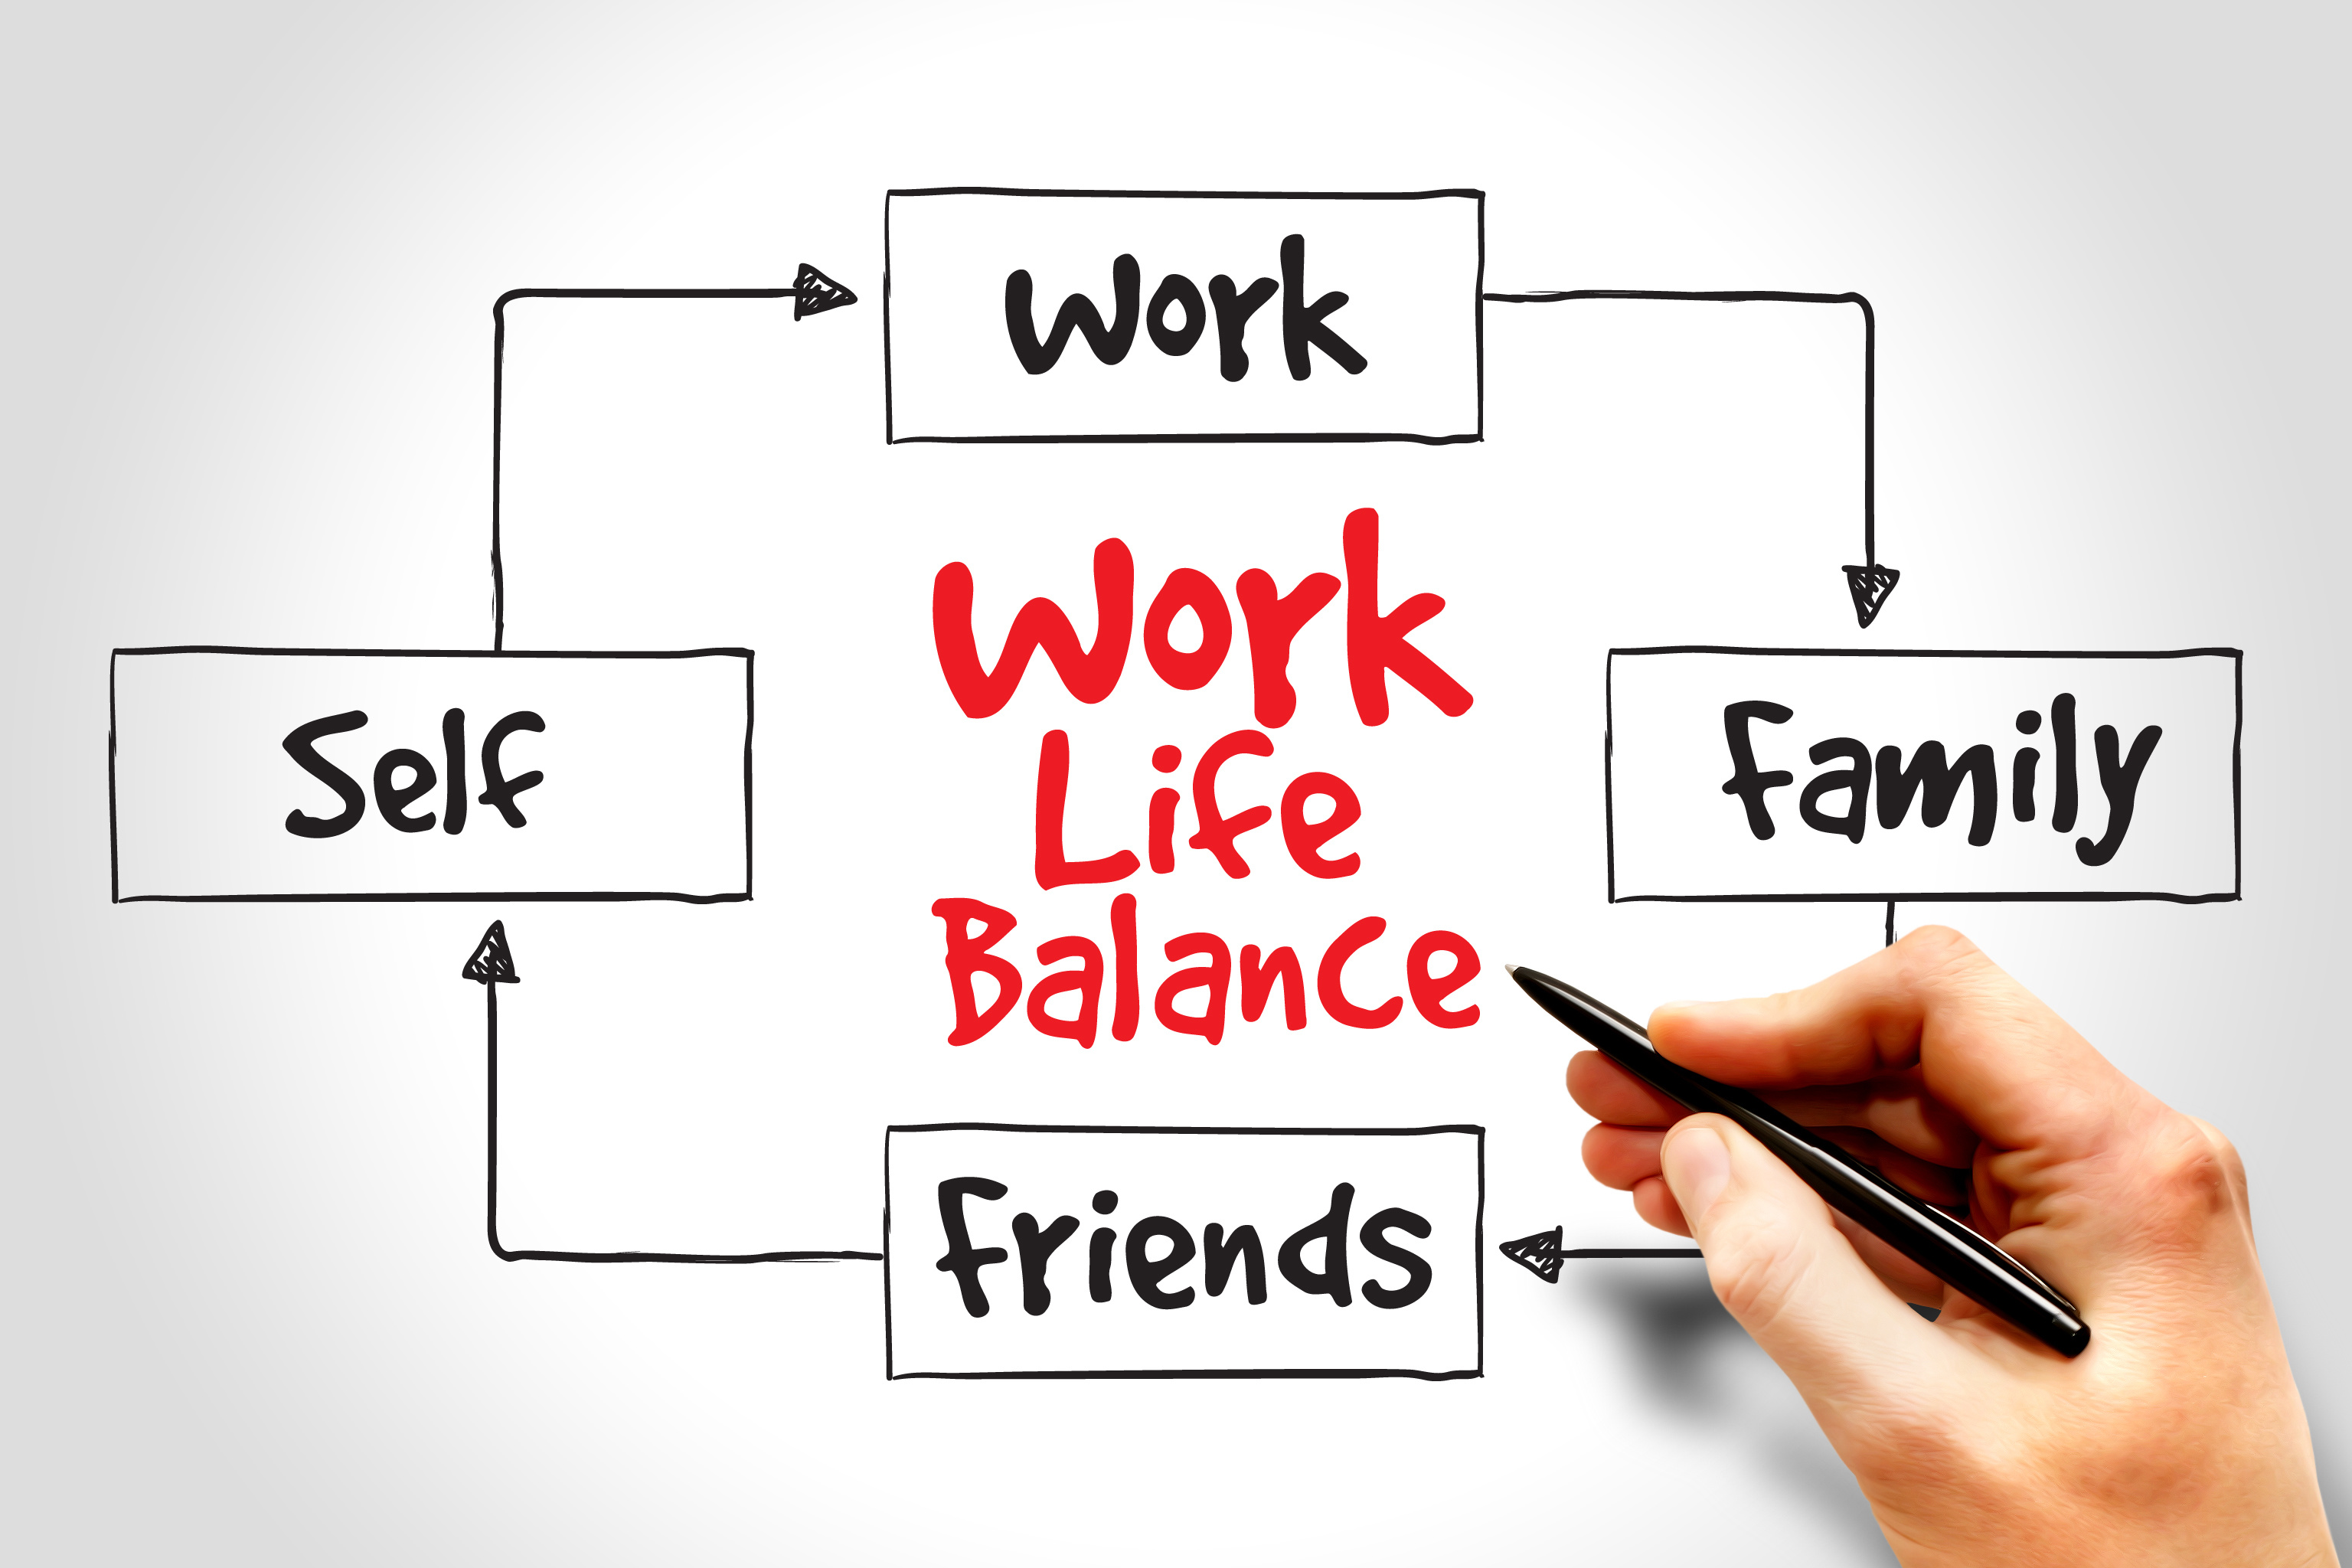 What is work life balance? - stress resolution